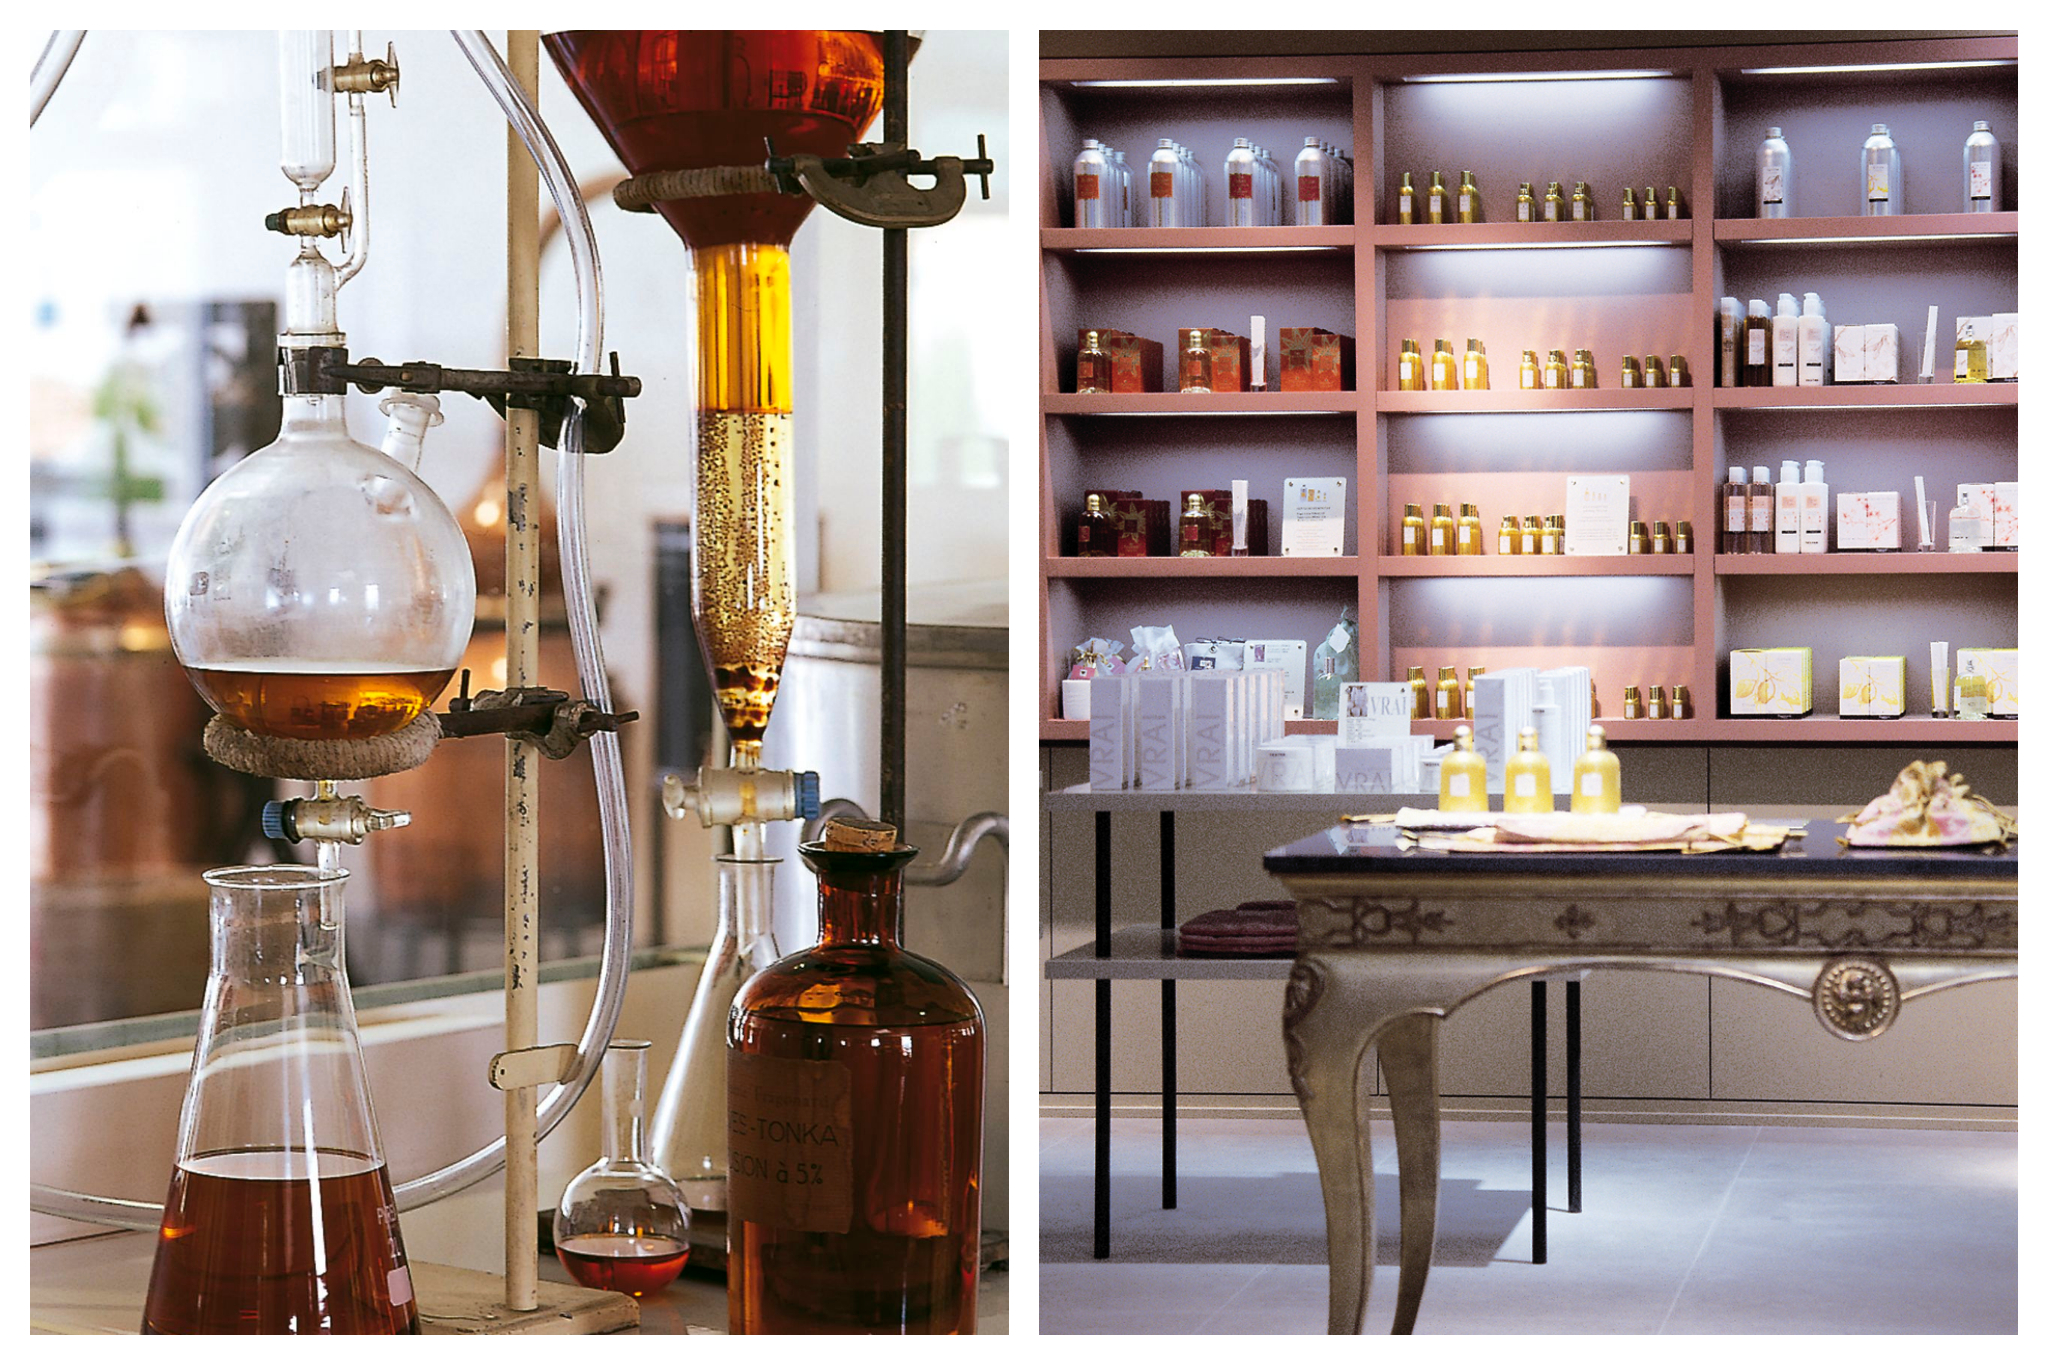 Fragrances are distilled in glass beakers in the Fragonard perfume factory, Right: Various Fragonard perfumes and products line the shelves and tables of a Fragonard store